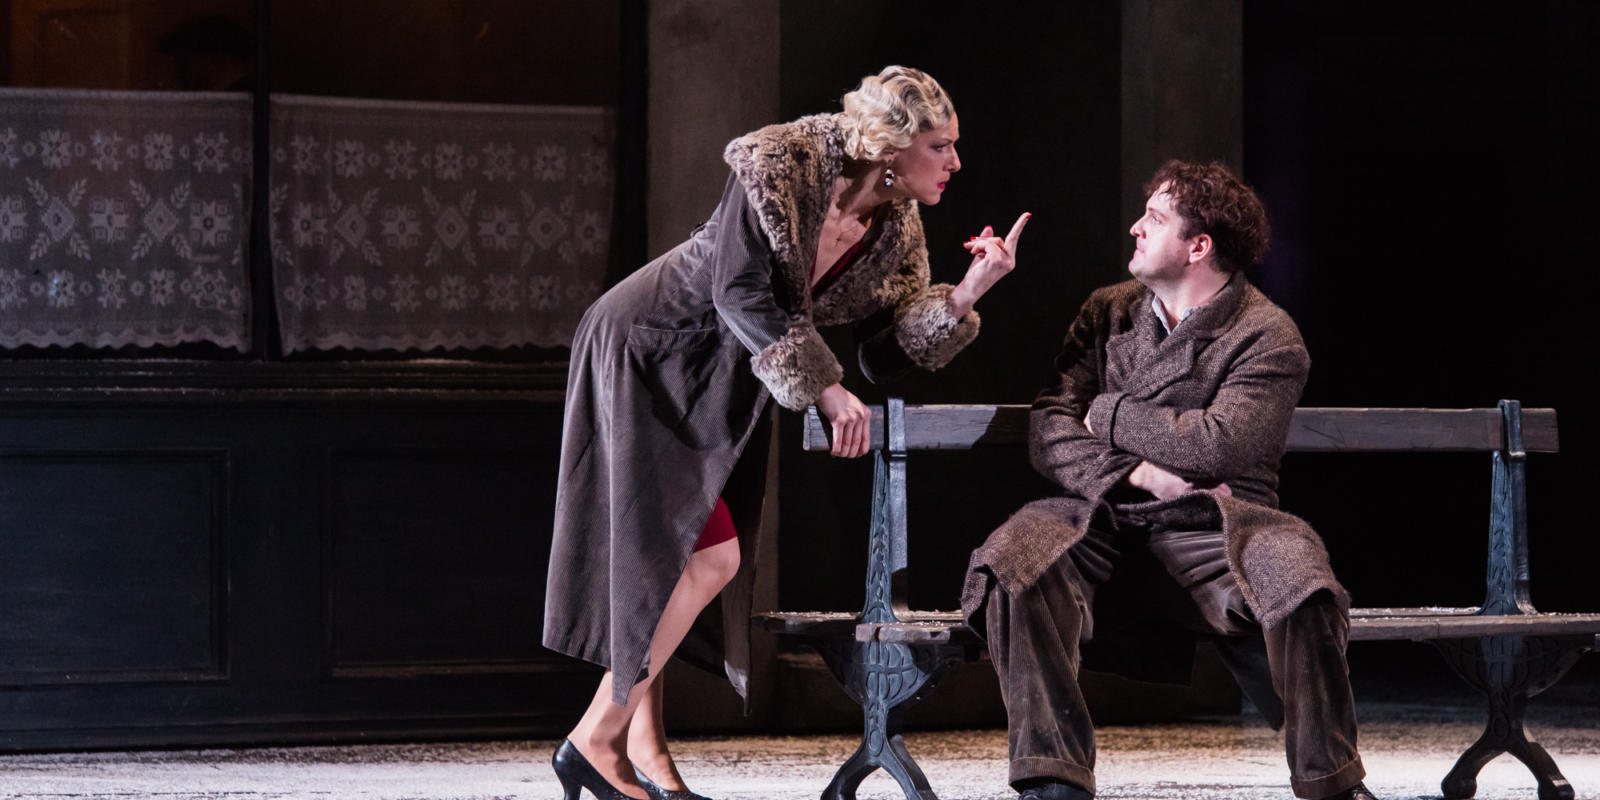 ENO La boheme Jennifer Holloway George von Bergen (c) Thomas Bowles